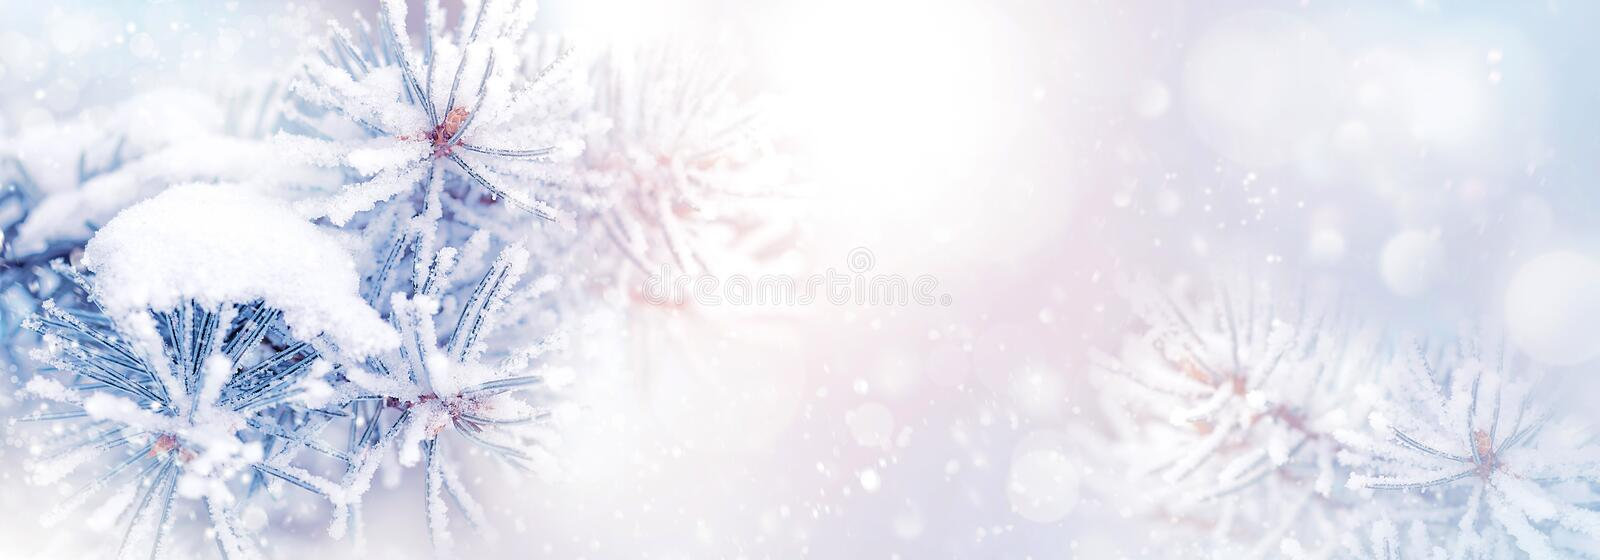 Winter christmas natural background. Pine branches in the snow in a beautiful snowy forest. Banner format. Copy space. Winter wond royalty free stock photography